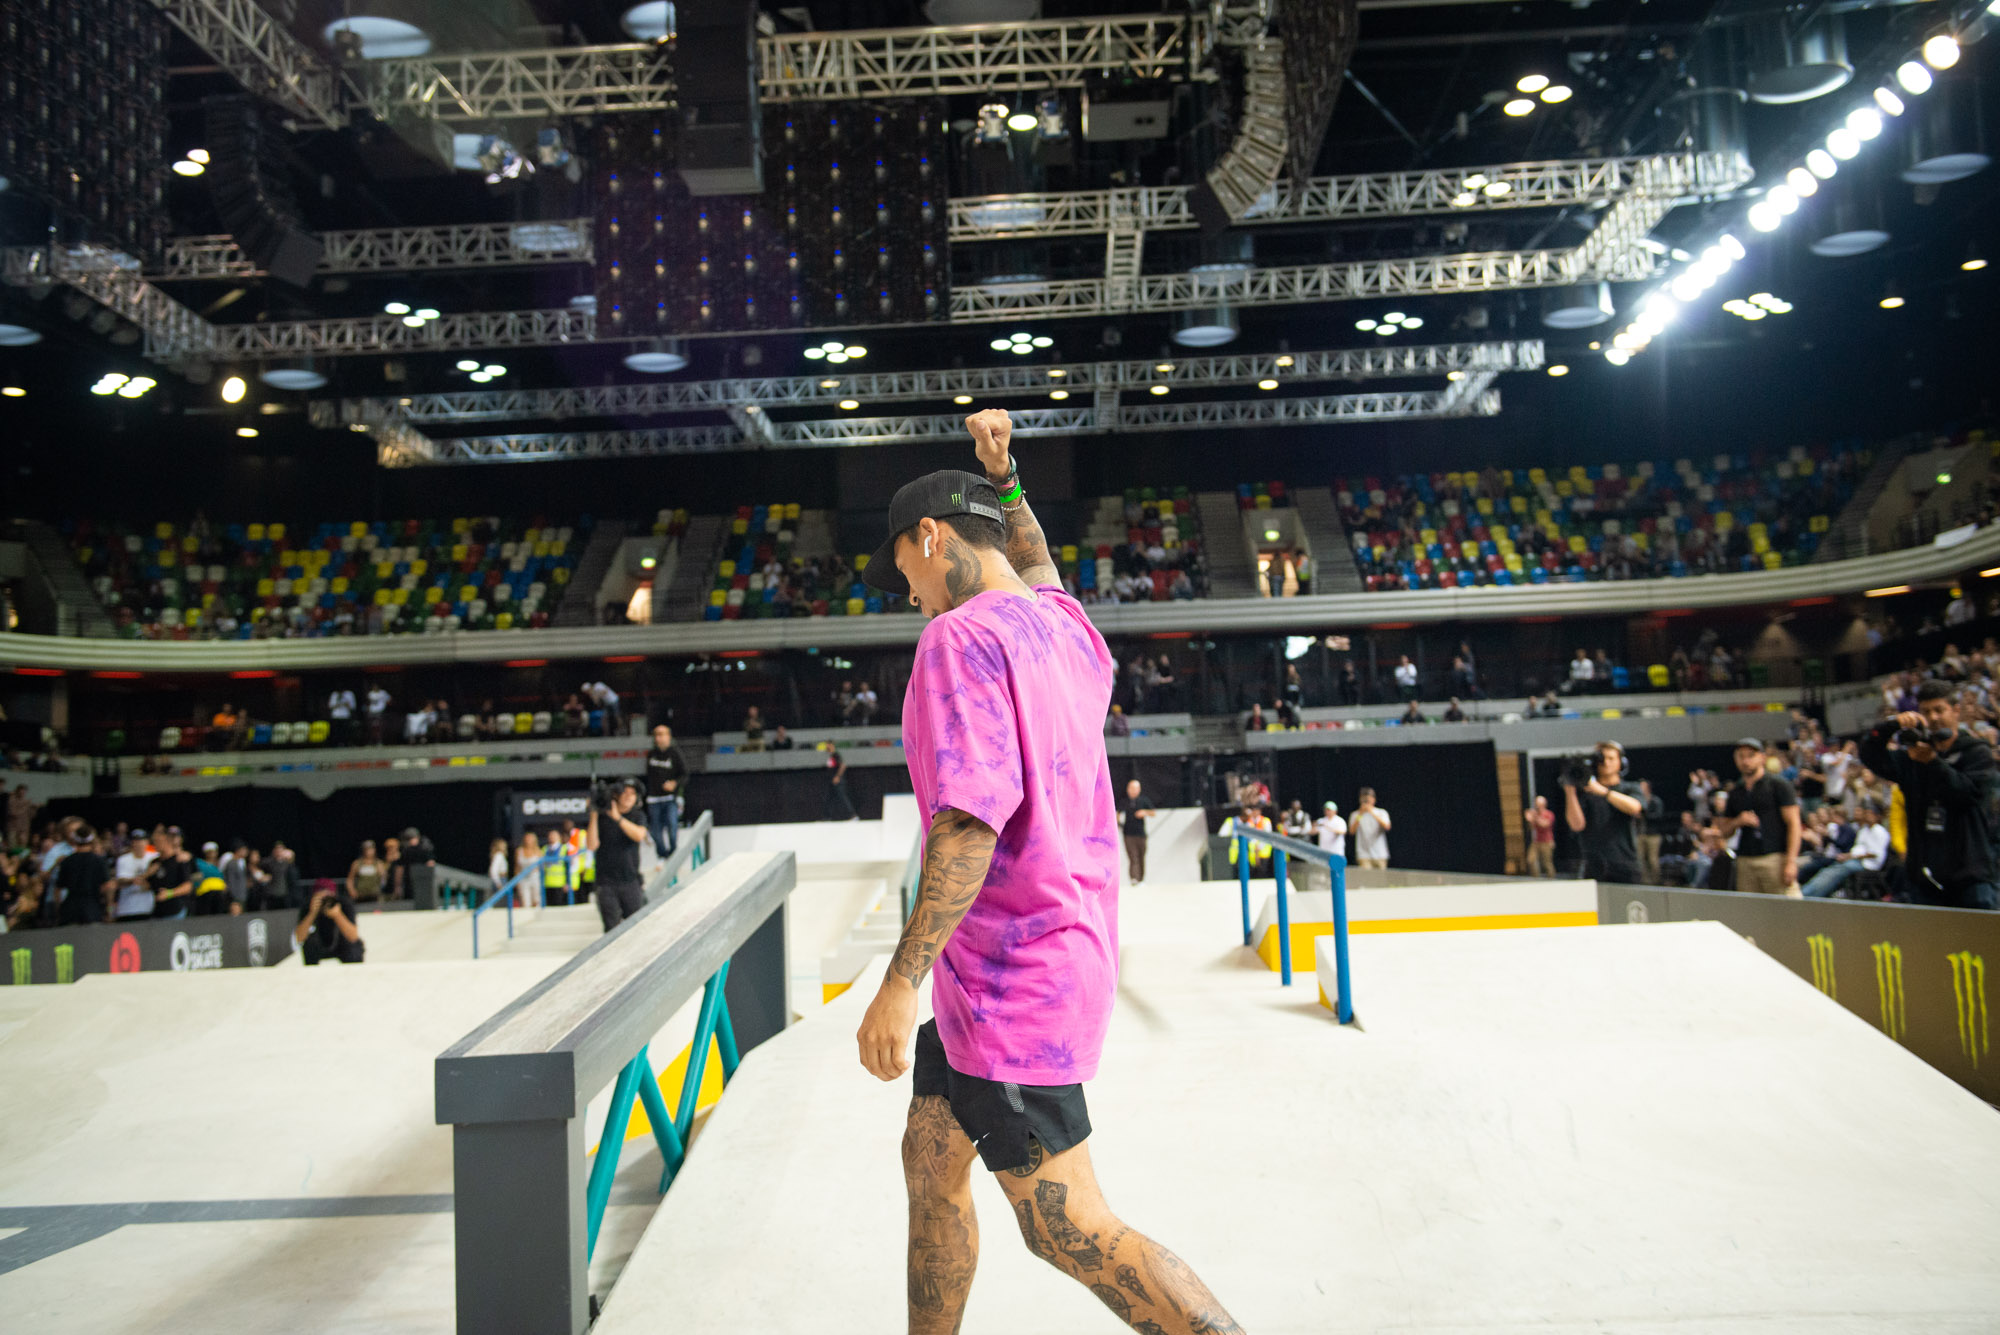 Monster Energy's Nyjah Huston takes 1st Place at SLS World Tour Stop